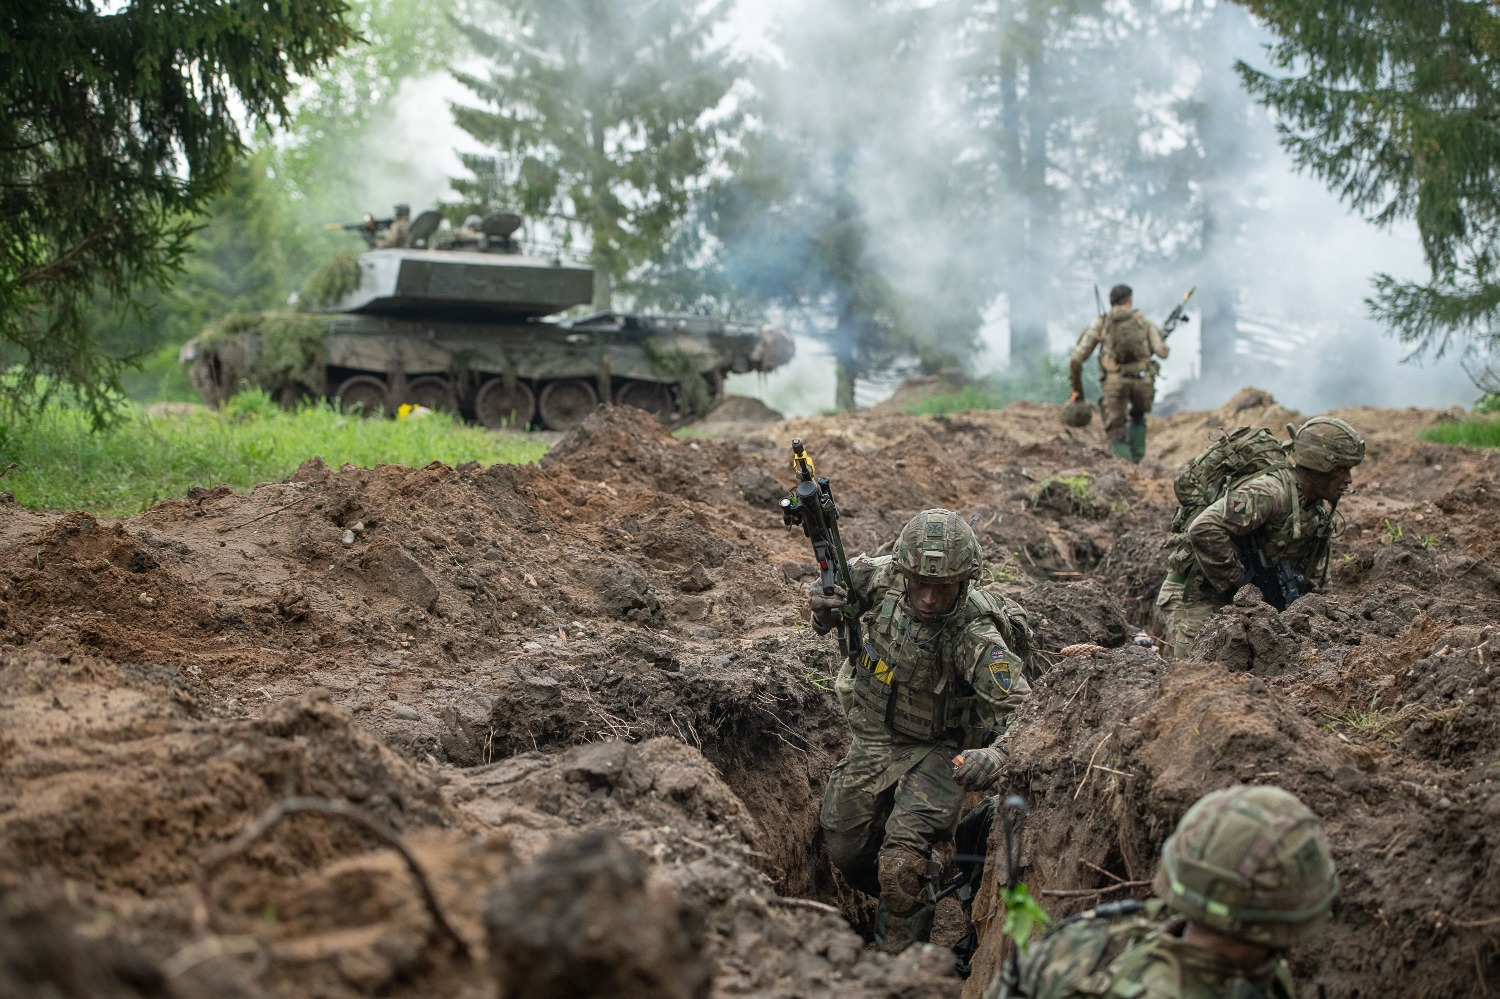 Estonian defense forces and troops from other NATO countries take part in a large-scale military exercise in the Baltic region.